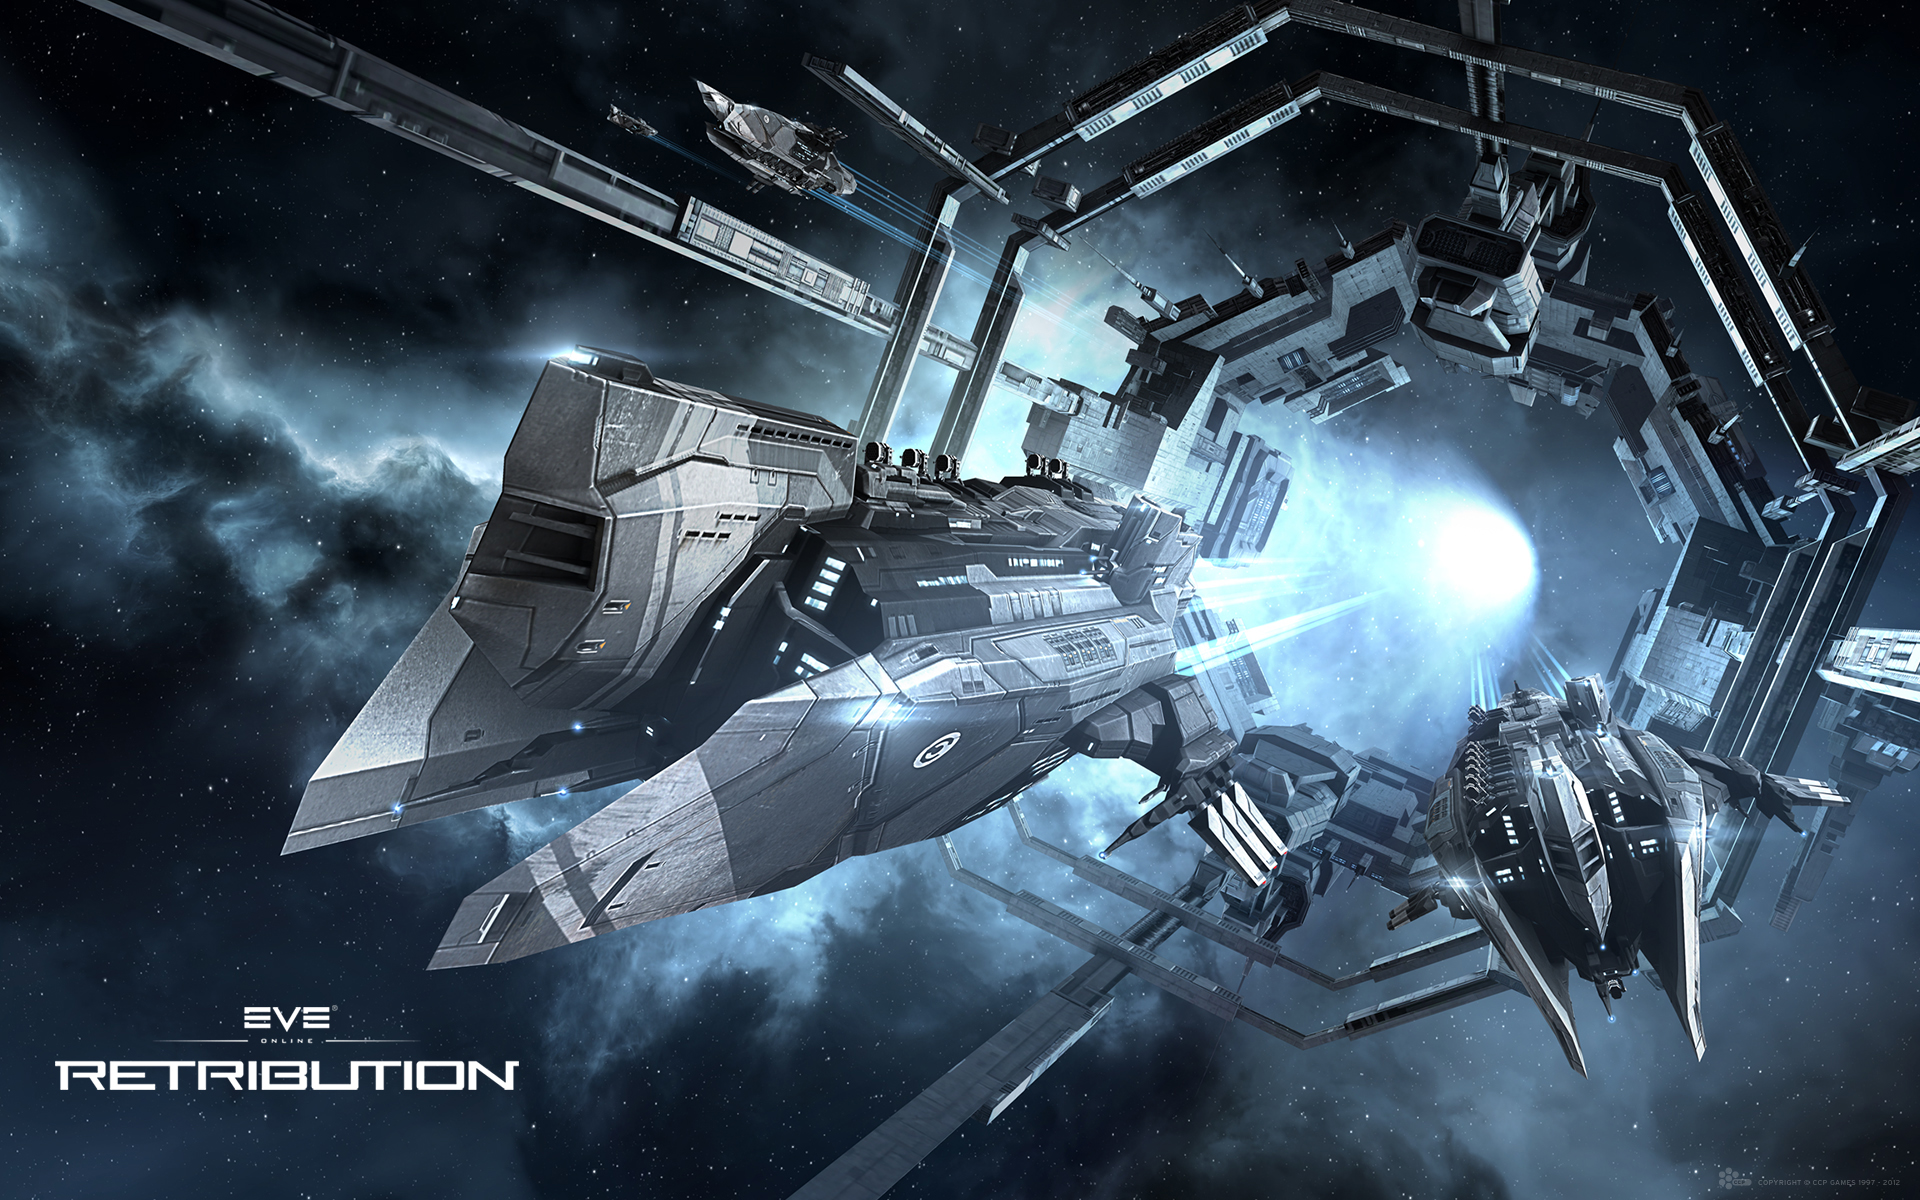 eve online retribution computer wallpapers desktop backgrounds